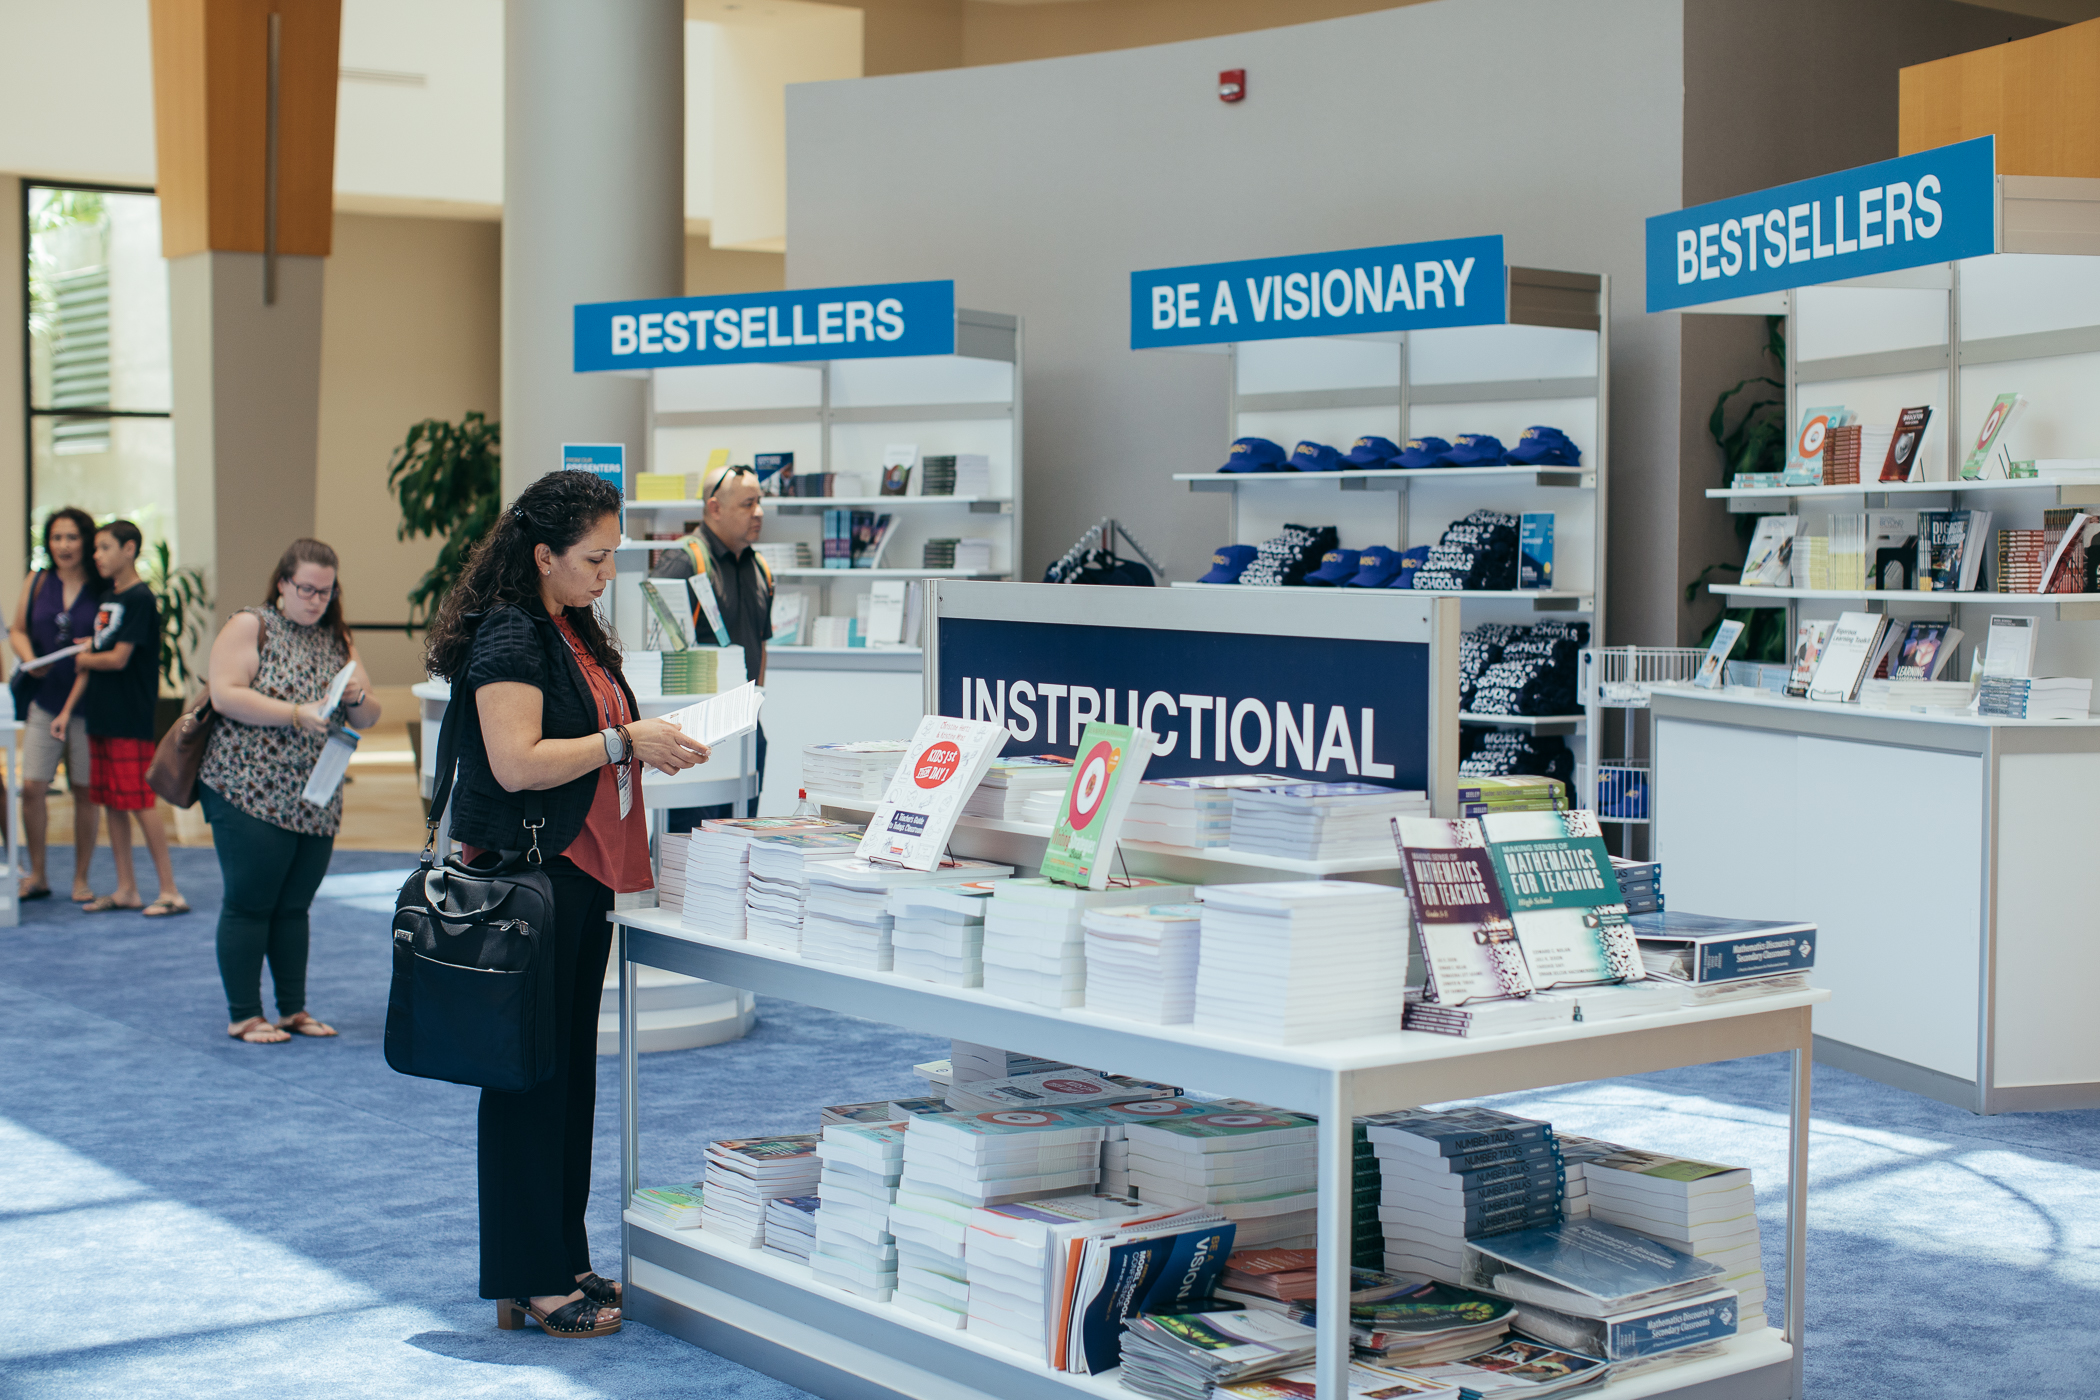 live event commercial photography brand storytelling for education florida conference photographer ©2018abigailbobophotography-5.jpg